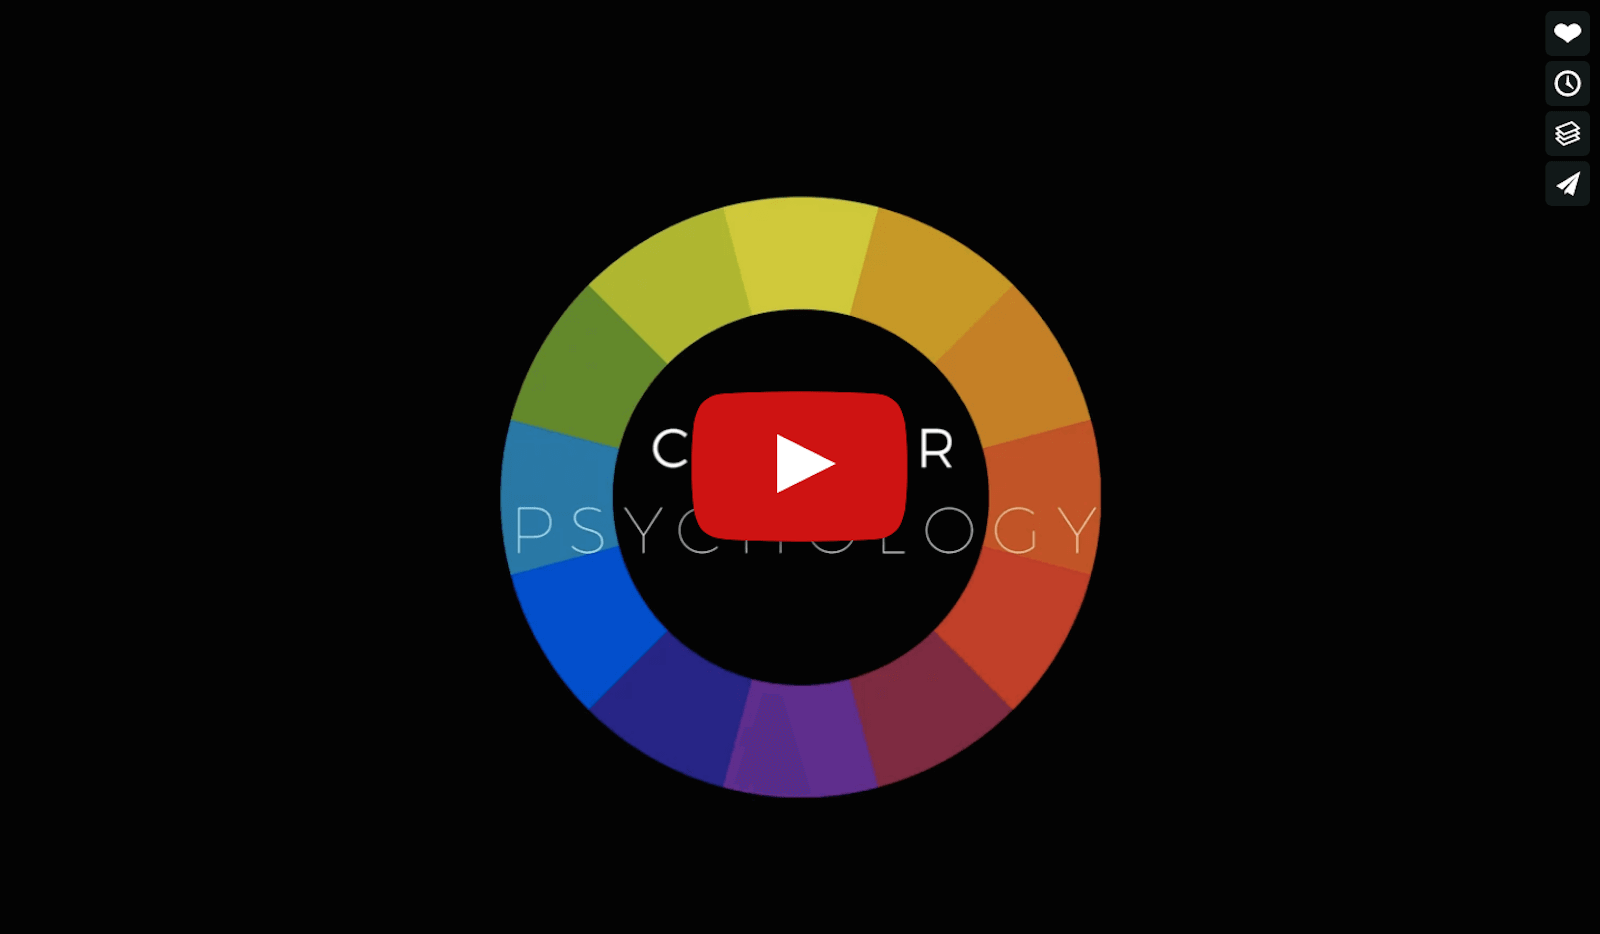 The psychological effect of color in films